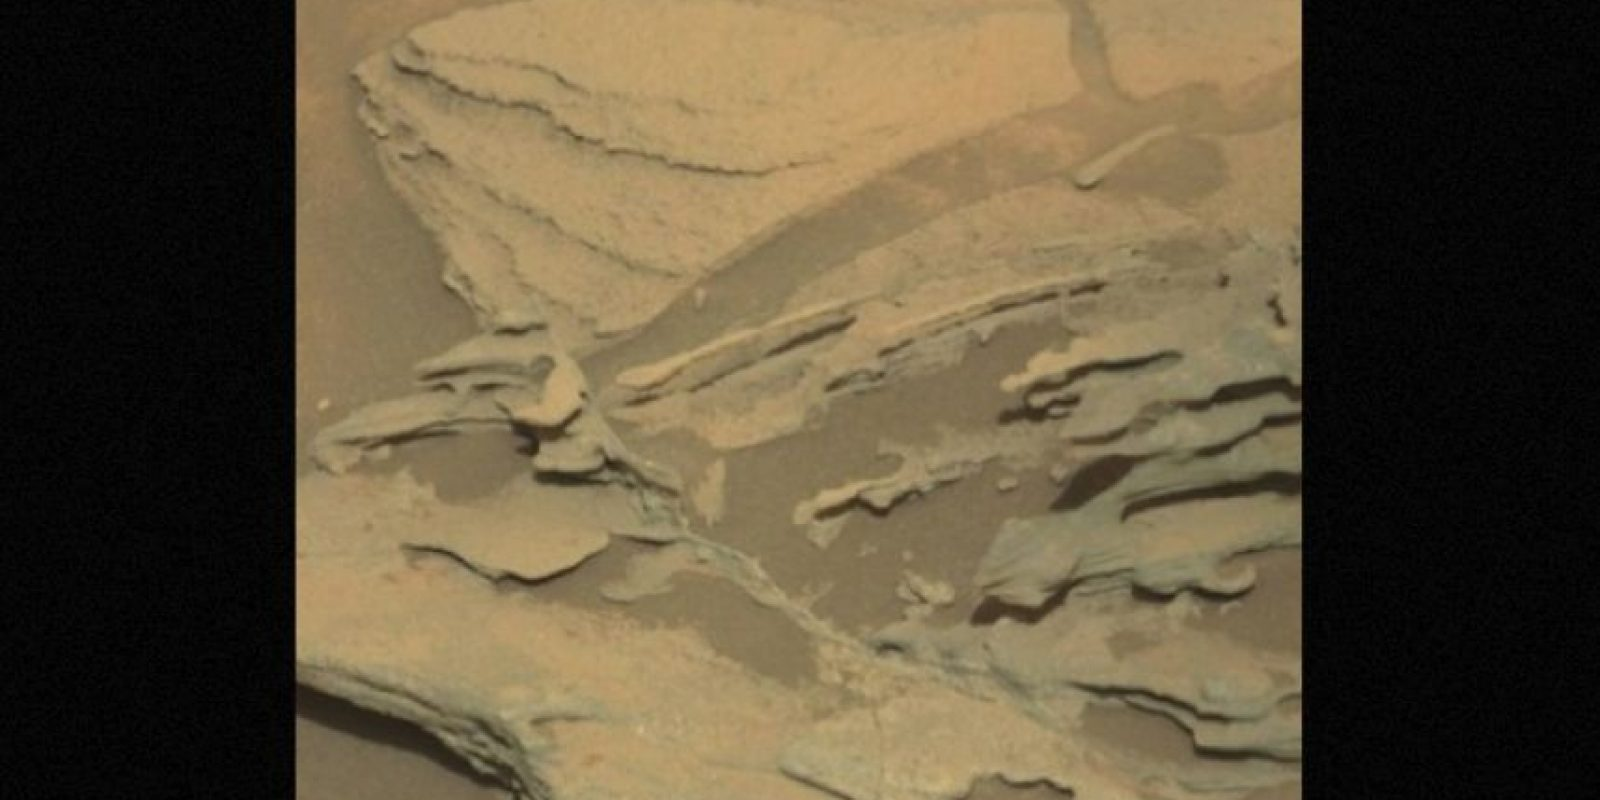 Foto: Foto: Original en http://mars.jpl.nasa.gov/msl/multimedia/raw/?rawid=1087MR0047790080600495E01_DXXX&s=1087.58599413143